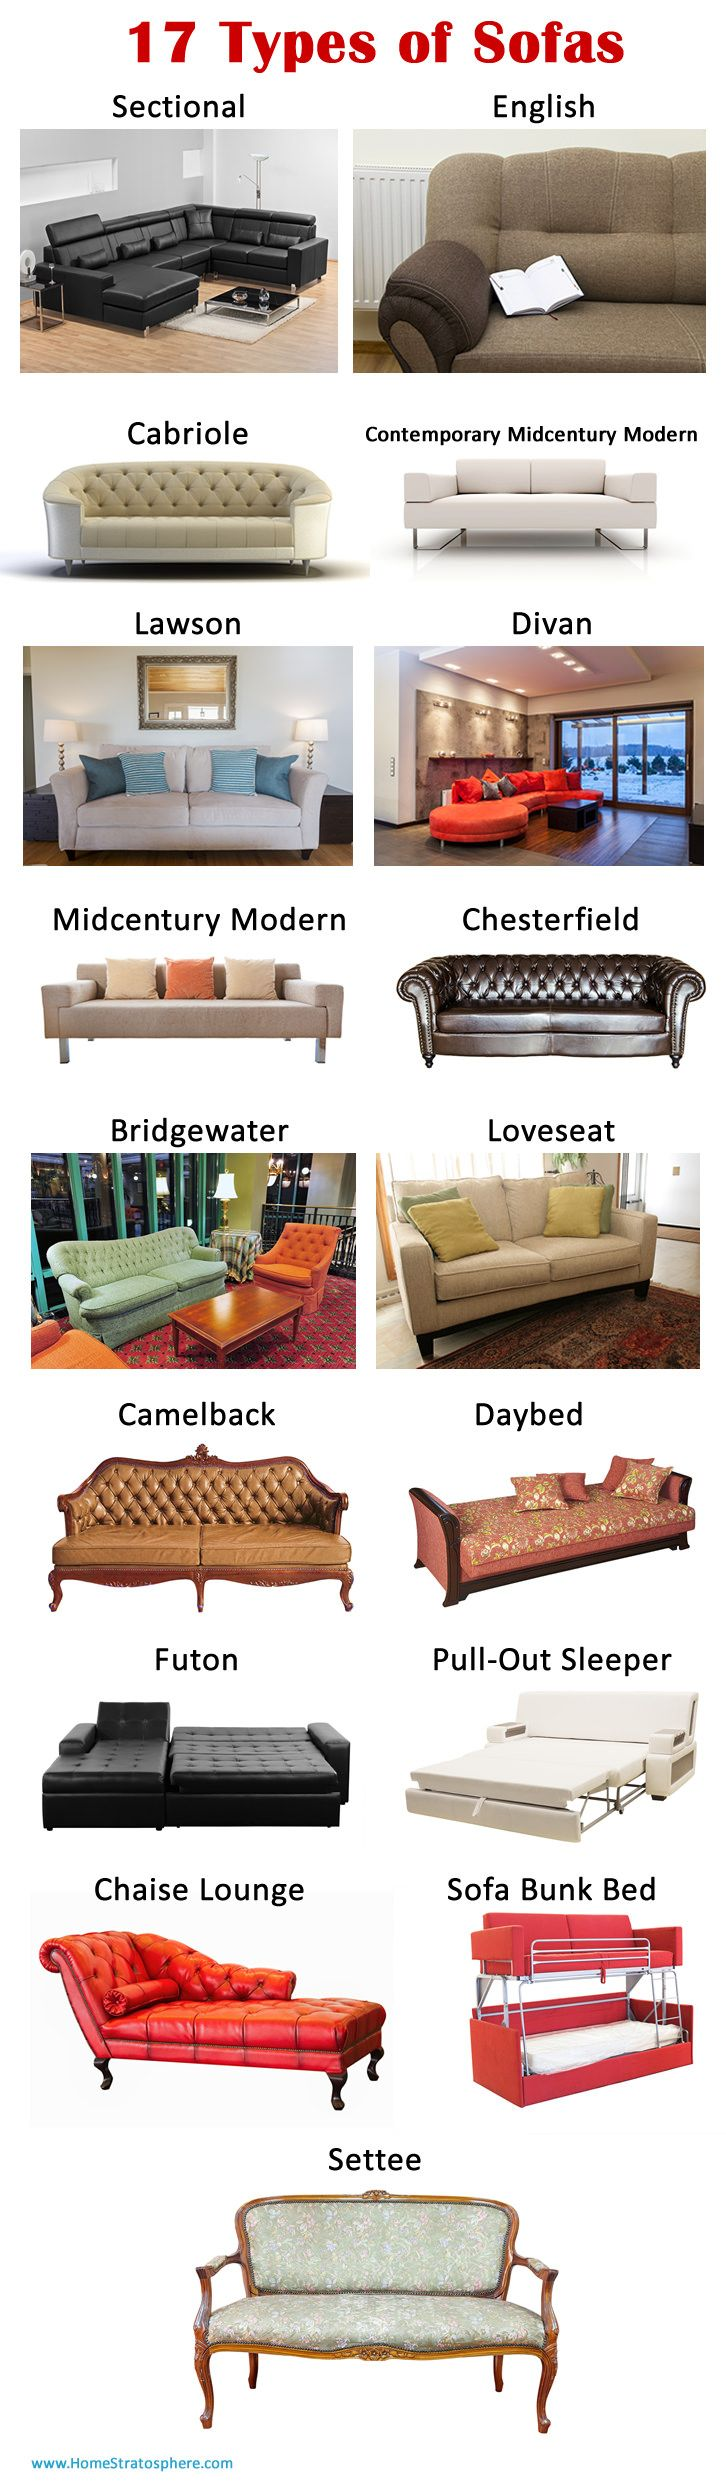 Infographic setting out 17 types of sofas